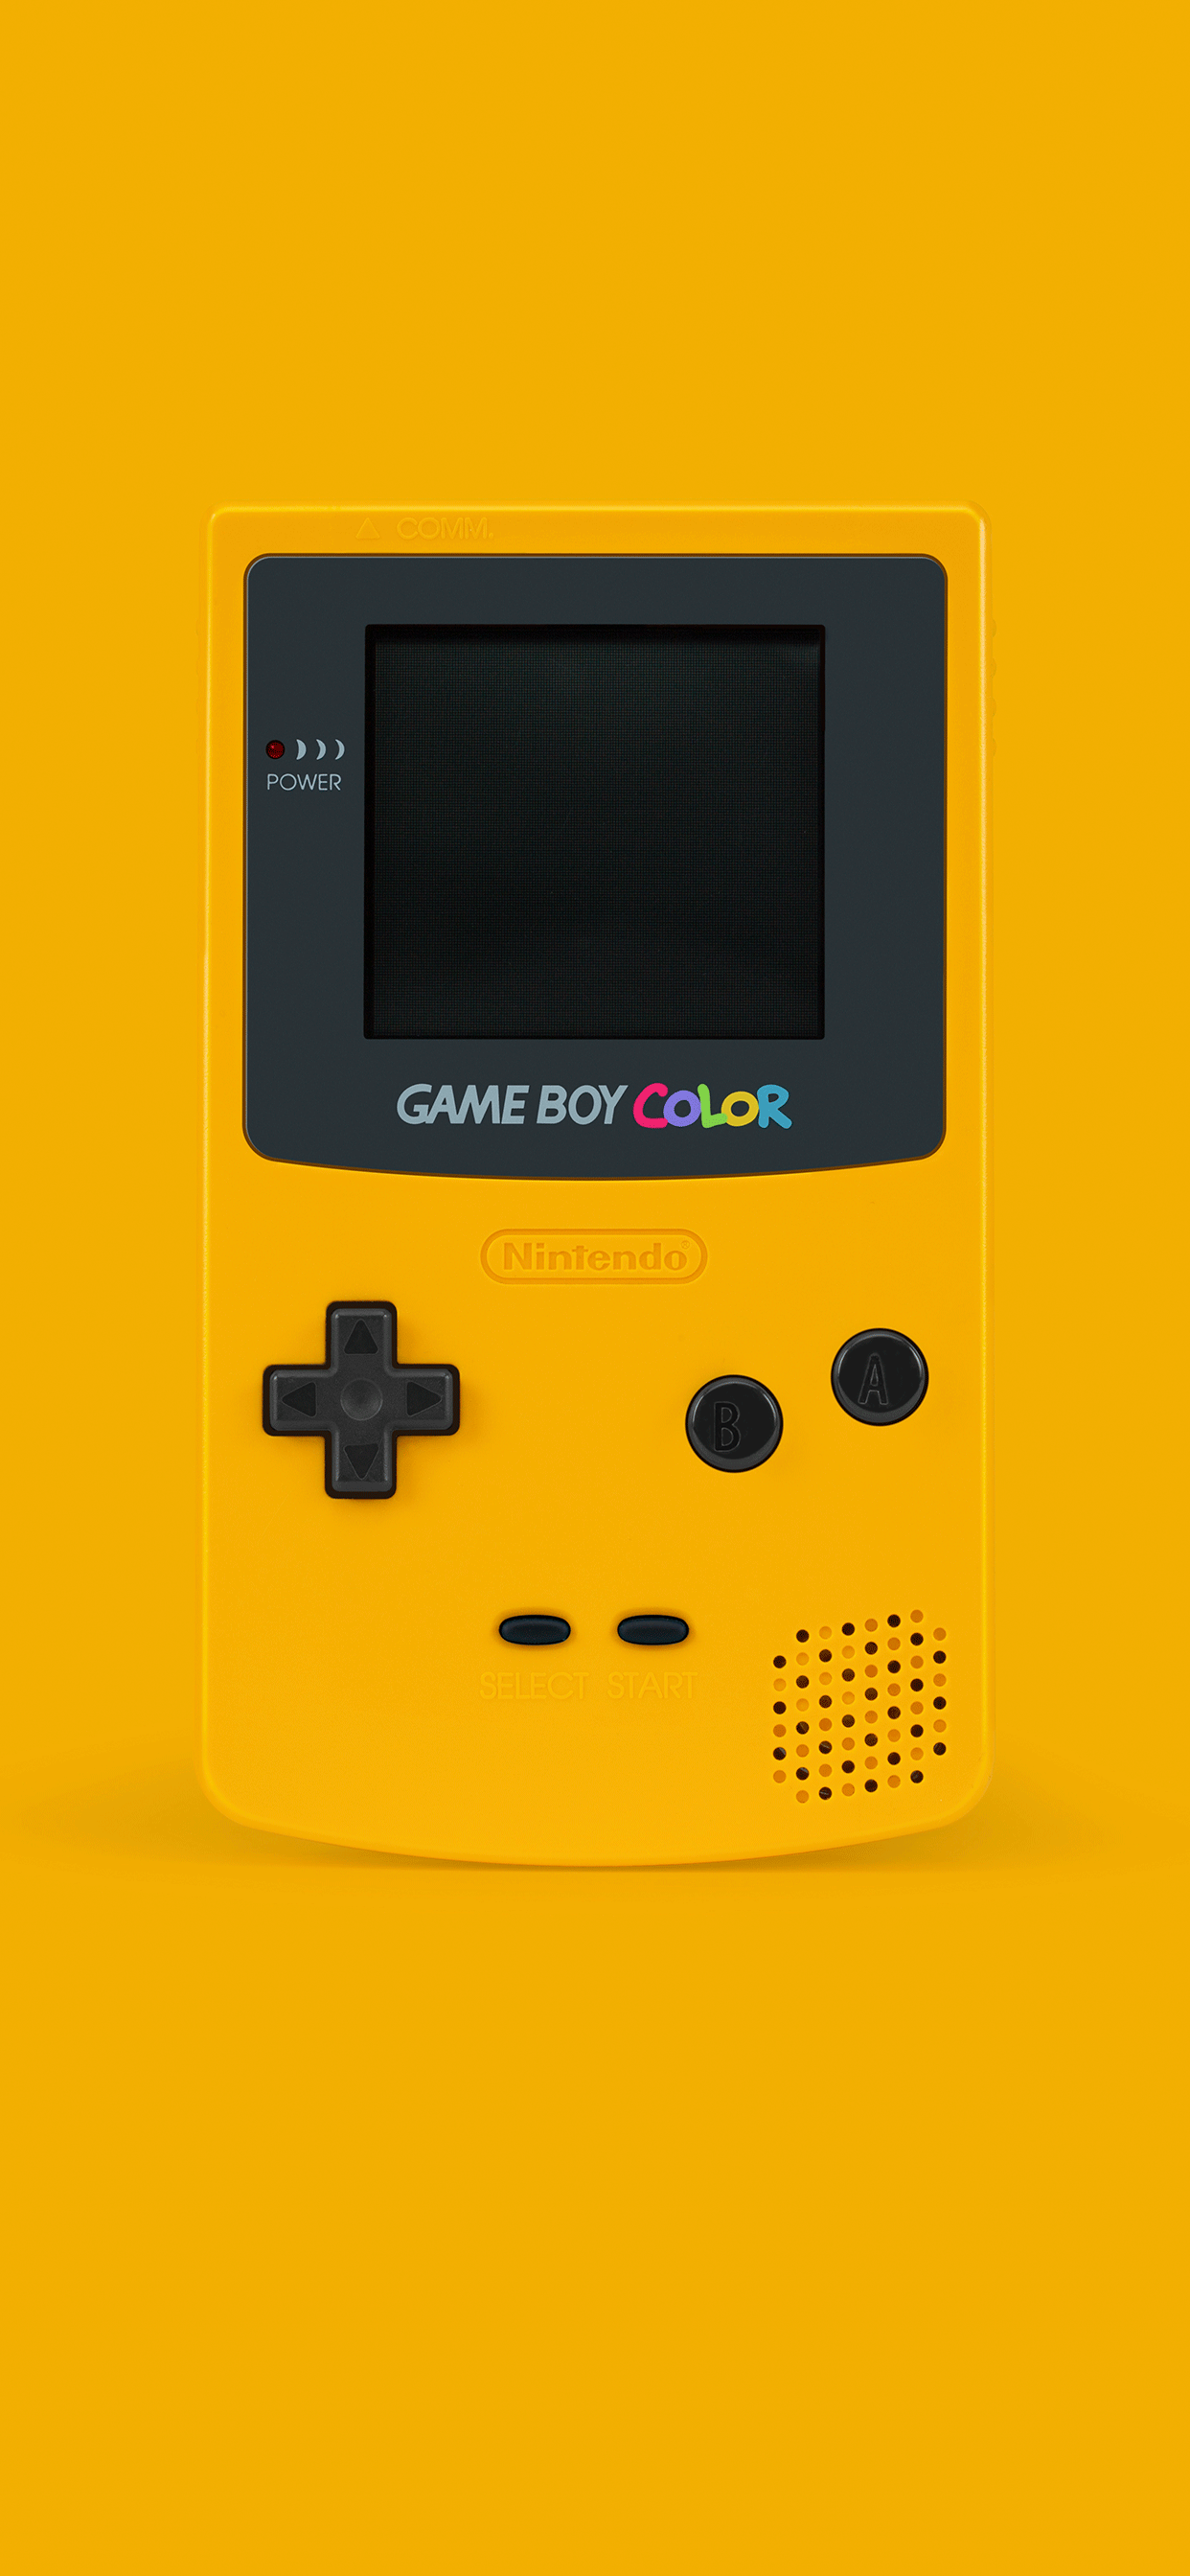 iPhone wallpapers game boy color yellow Fonds d'écran iPhone du 10/05/2019